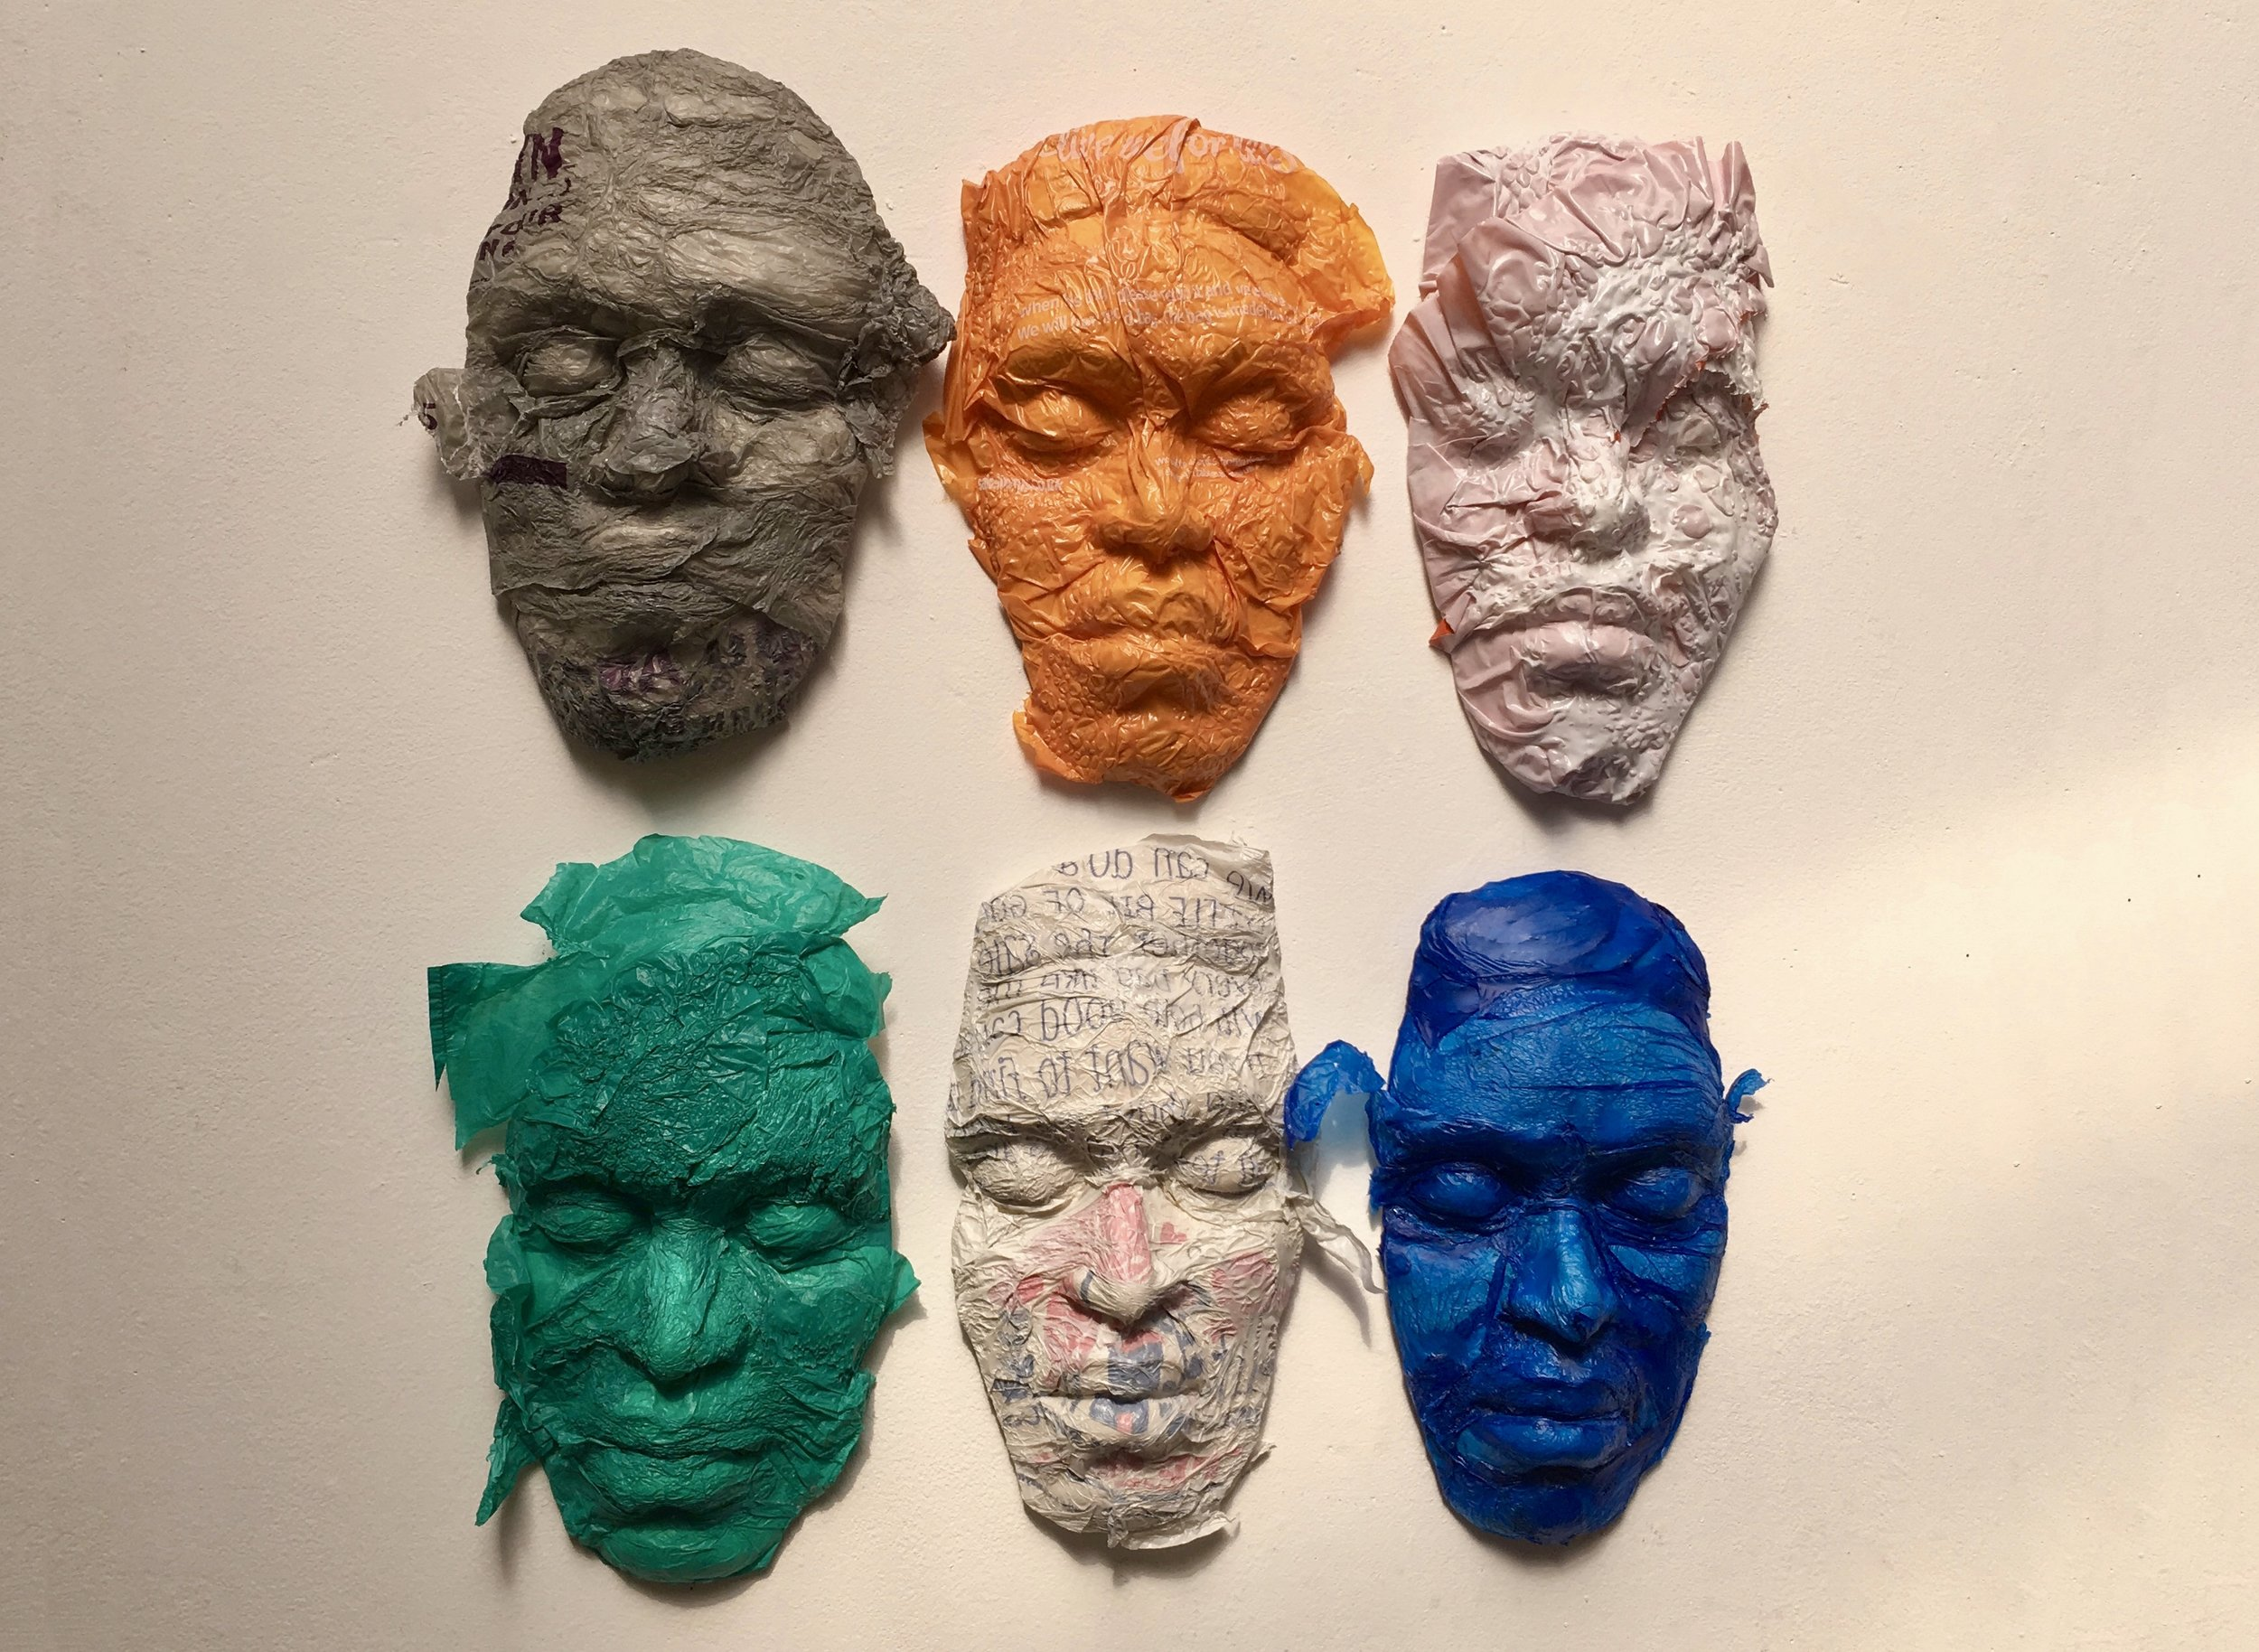 Bags for Life  (Plastic Bags, Plaster Masks; each mask approx 20cm x 10cm)